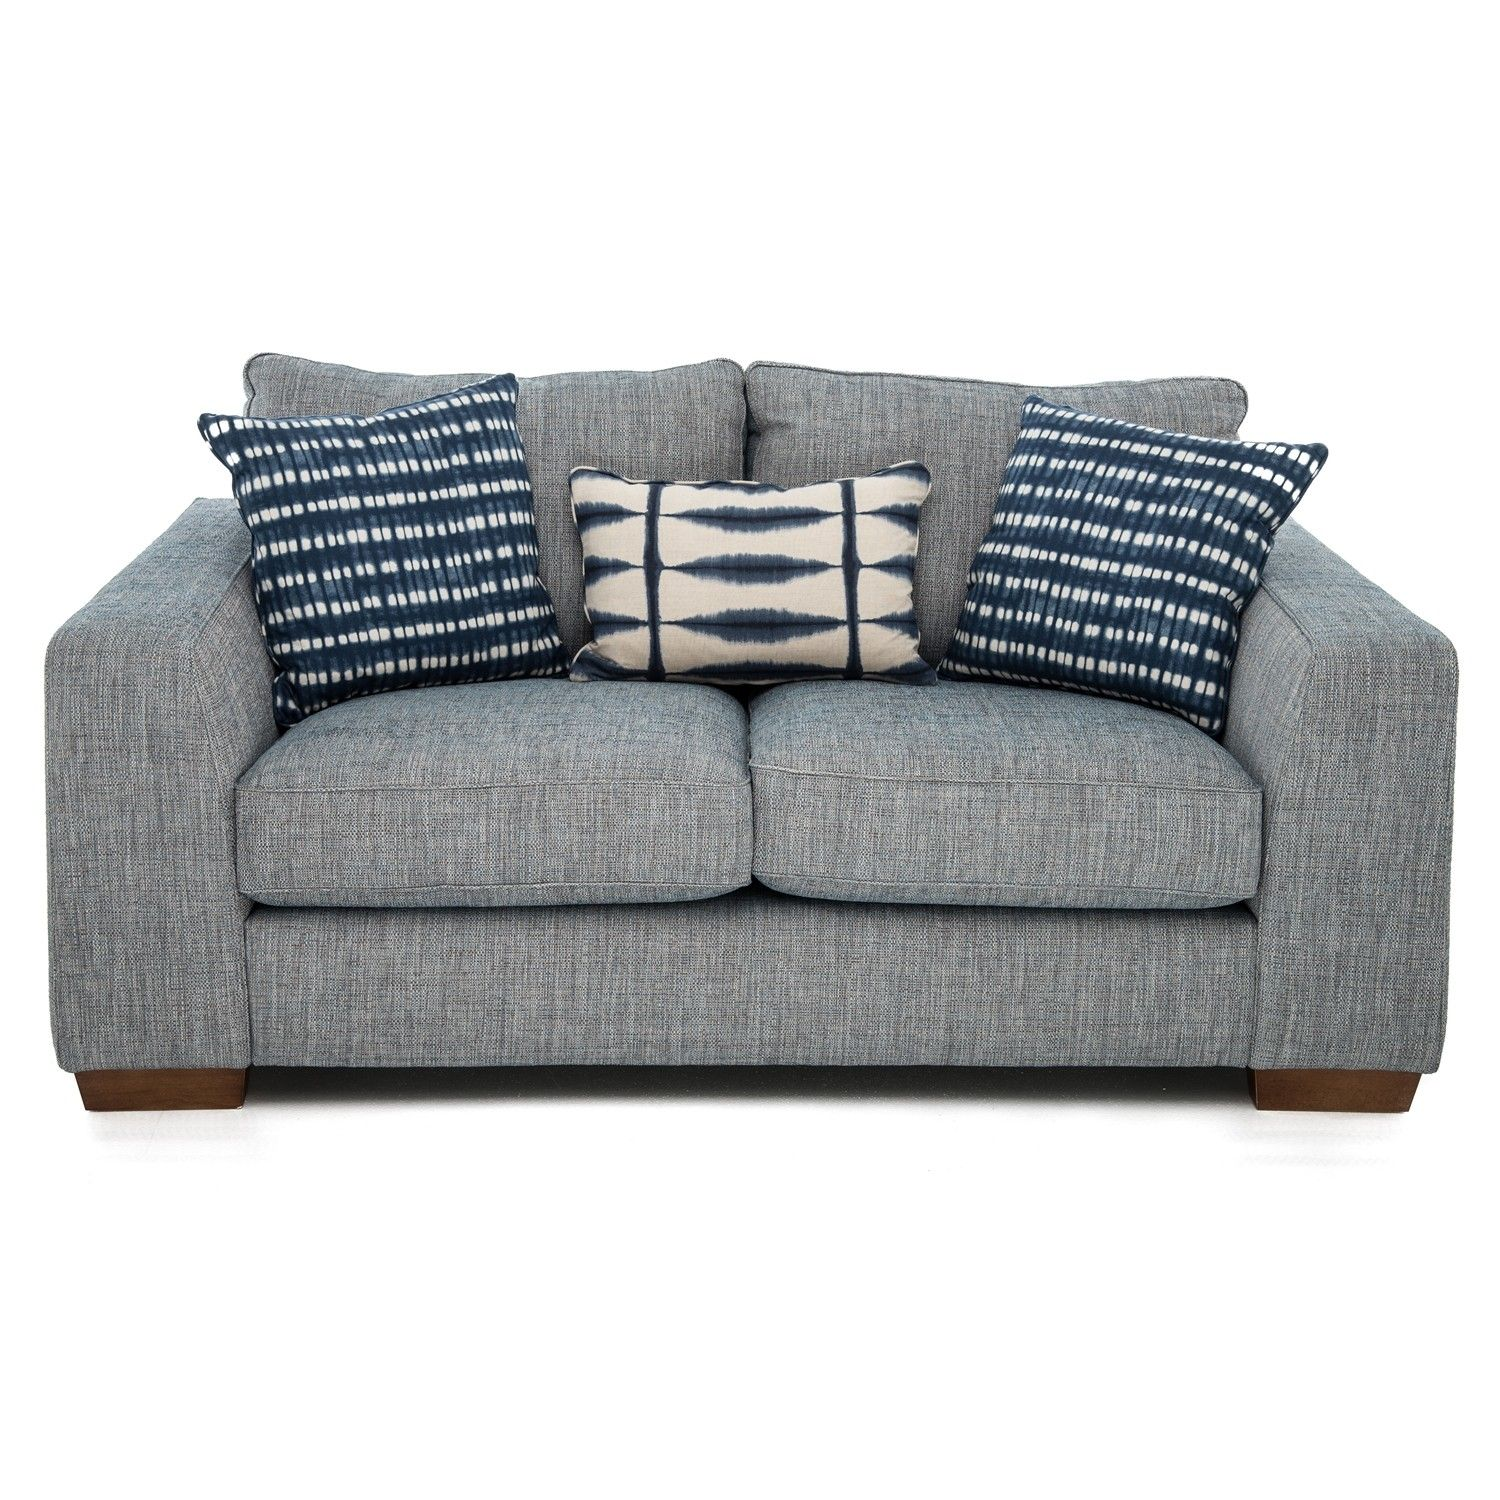 Astounding Add Interest To Your Living Room With The Casa Jayden Sofa 2 Ibusinesslaw Wood Chair Design Ideas Ibusinesslaworg